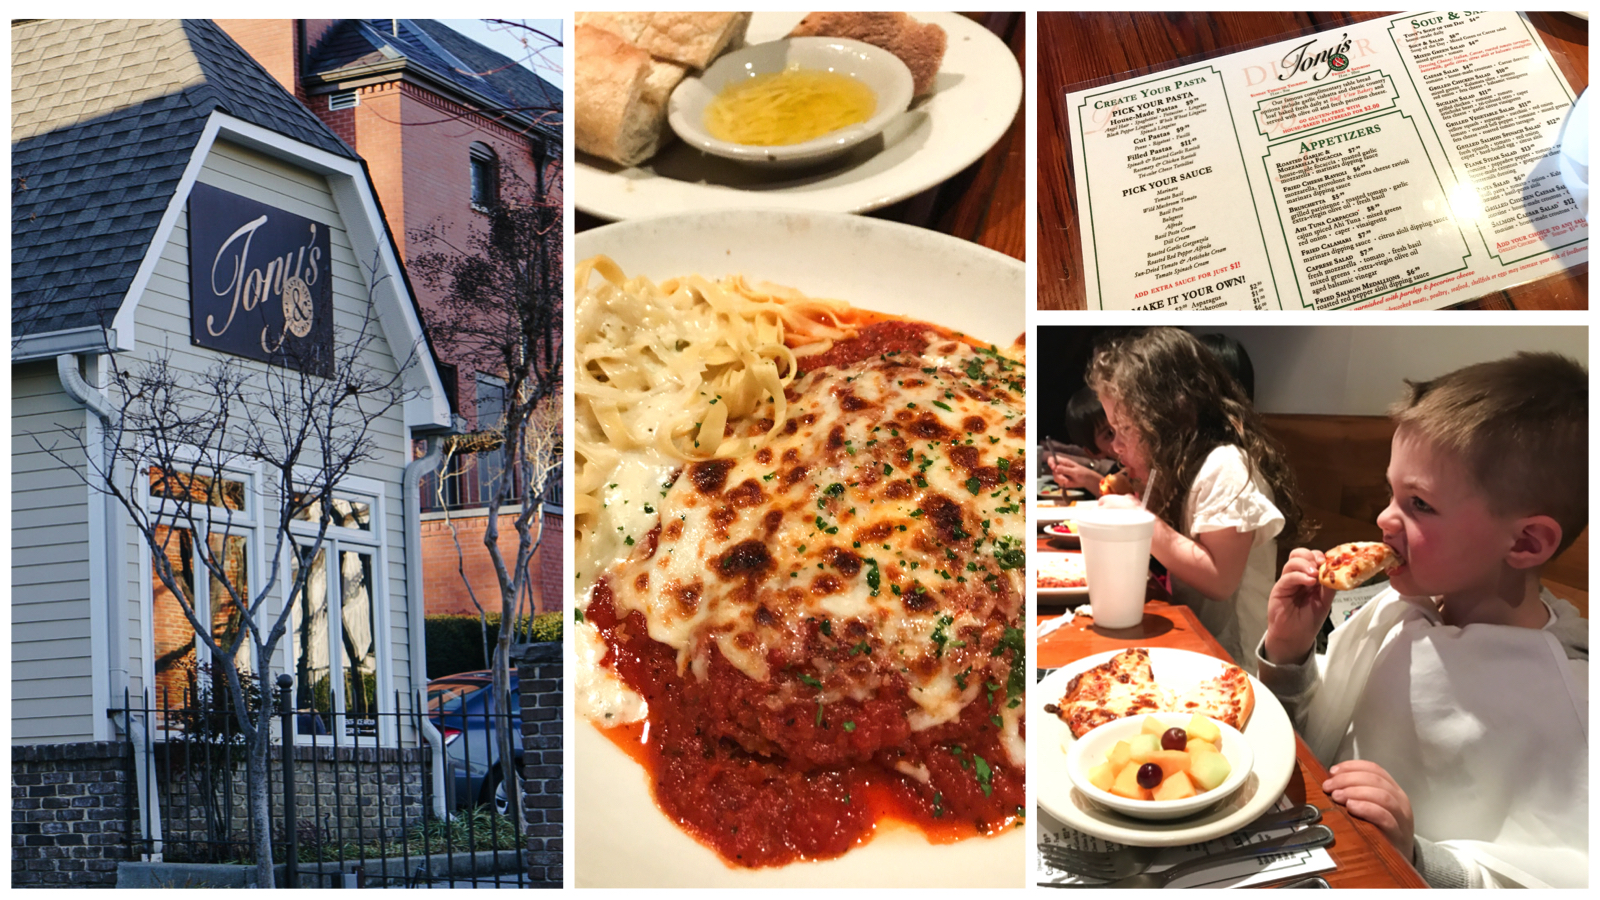 Chattanooga Tennessee Things to Do - Family Travel, Vacation and Spring Break Fun via Misty Nelson Travel Blogger - Tony's Pasta Shop in Bluff View Art District